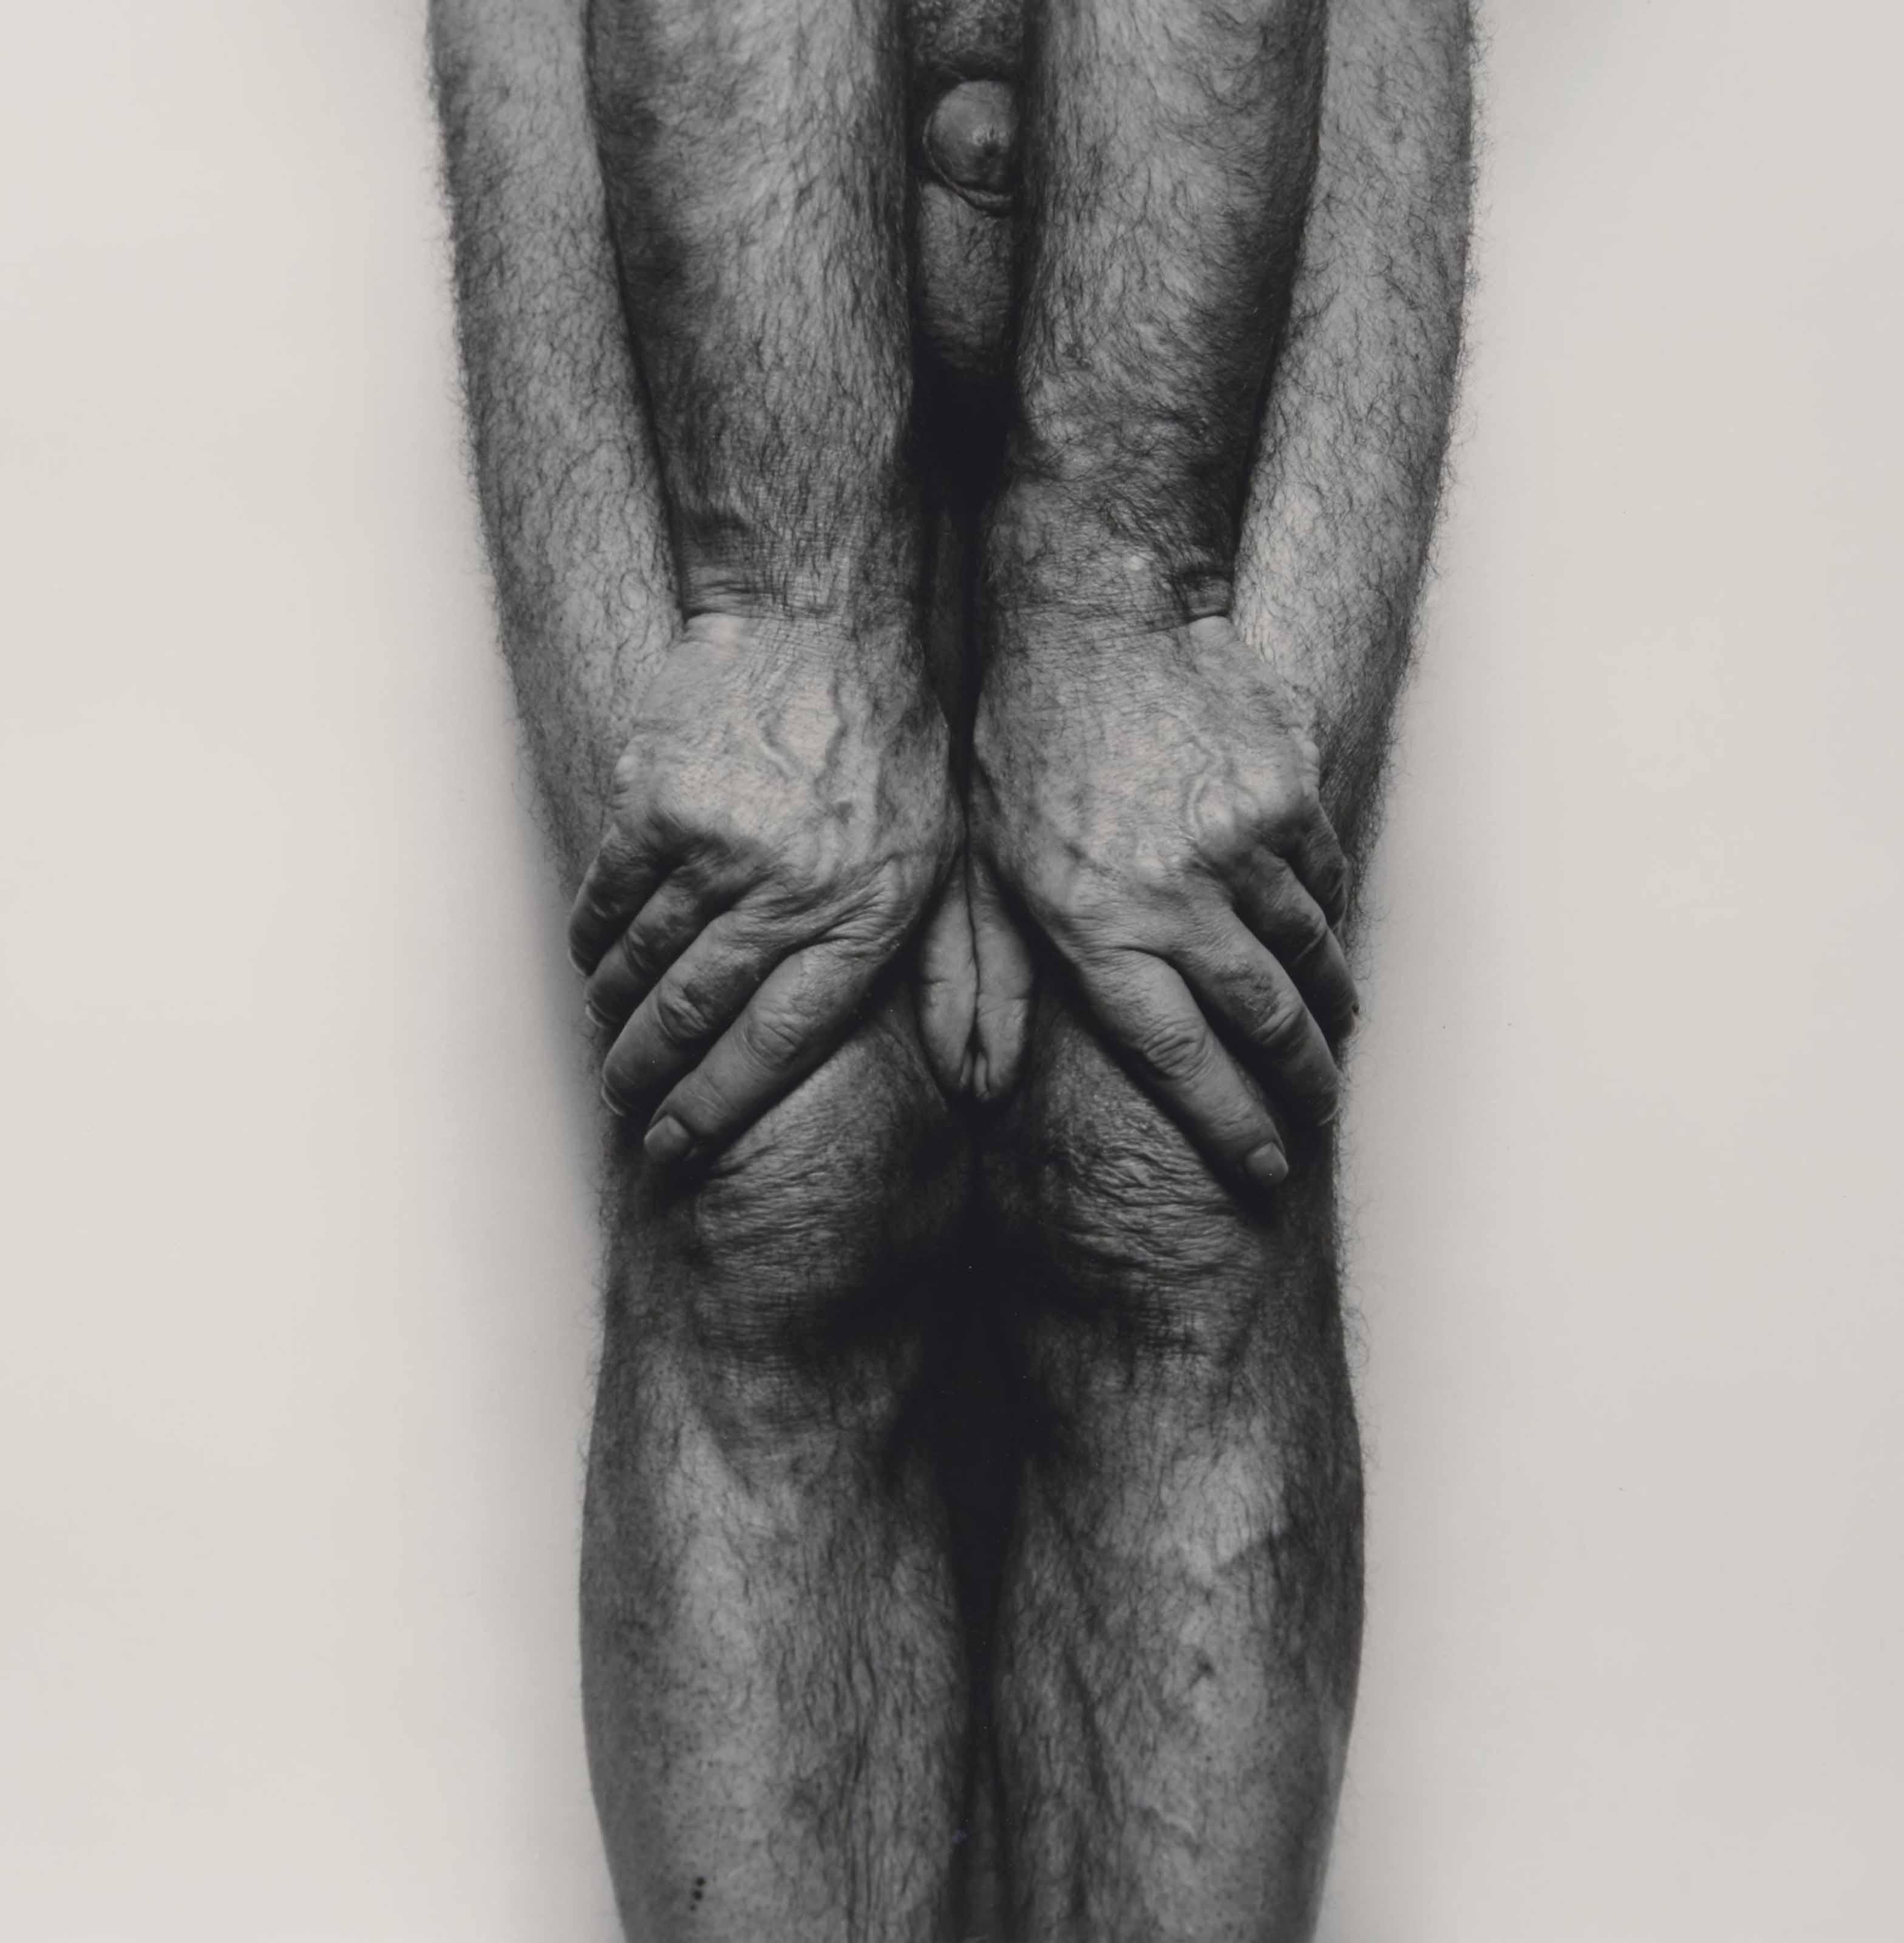 Self Portrait (Legs and Hands, Thumbs Together) SP6185, 1985